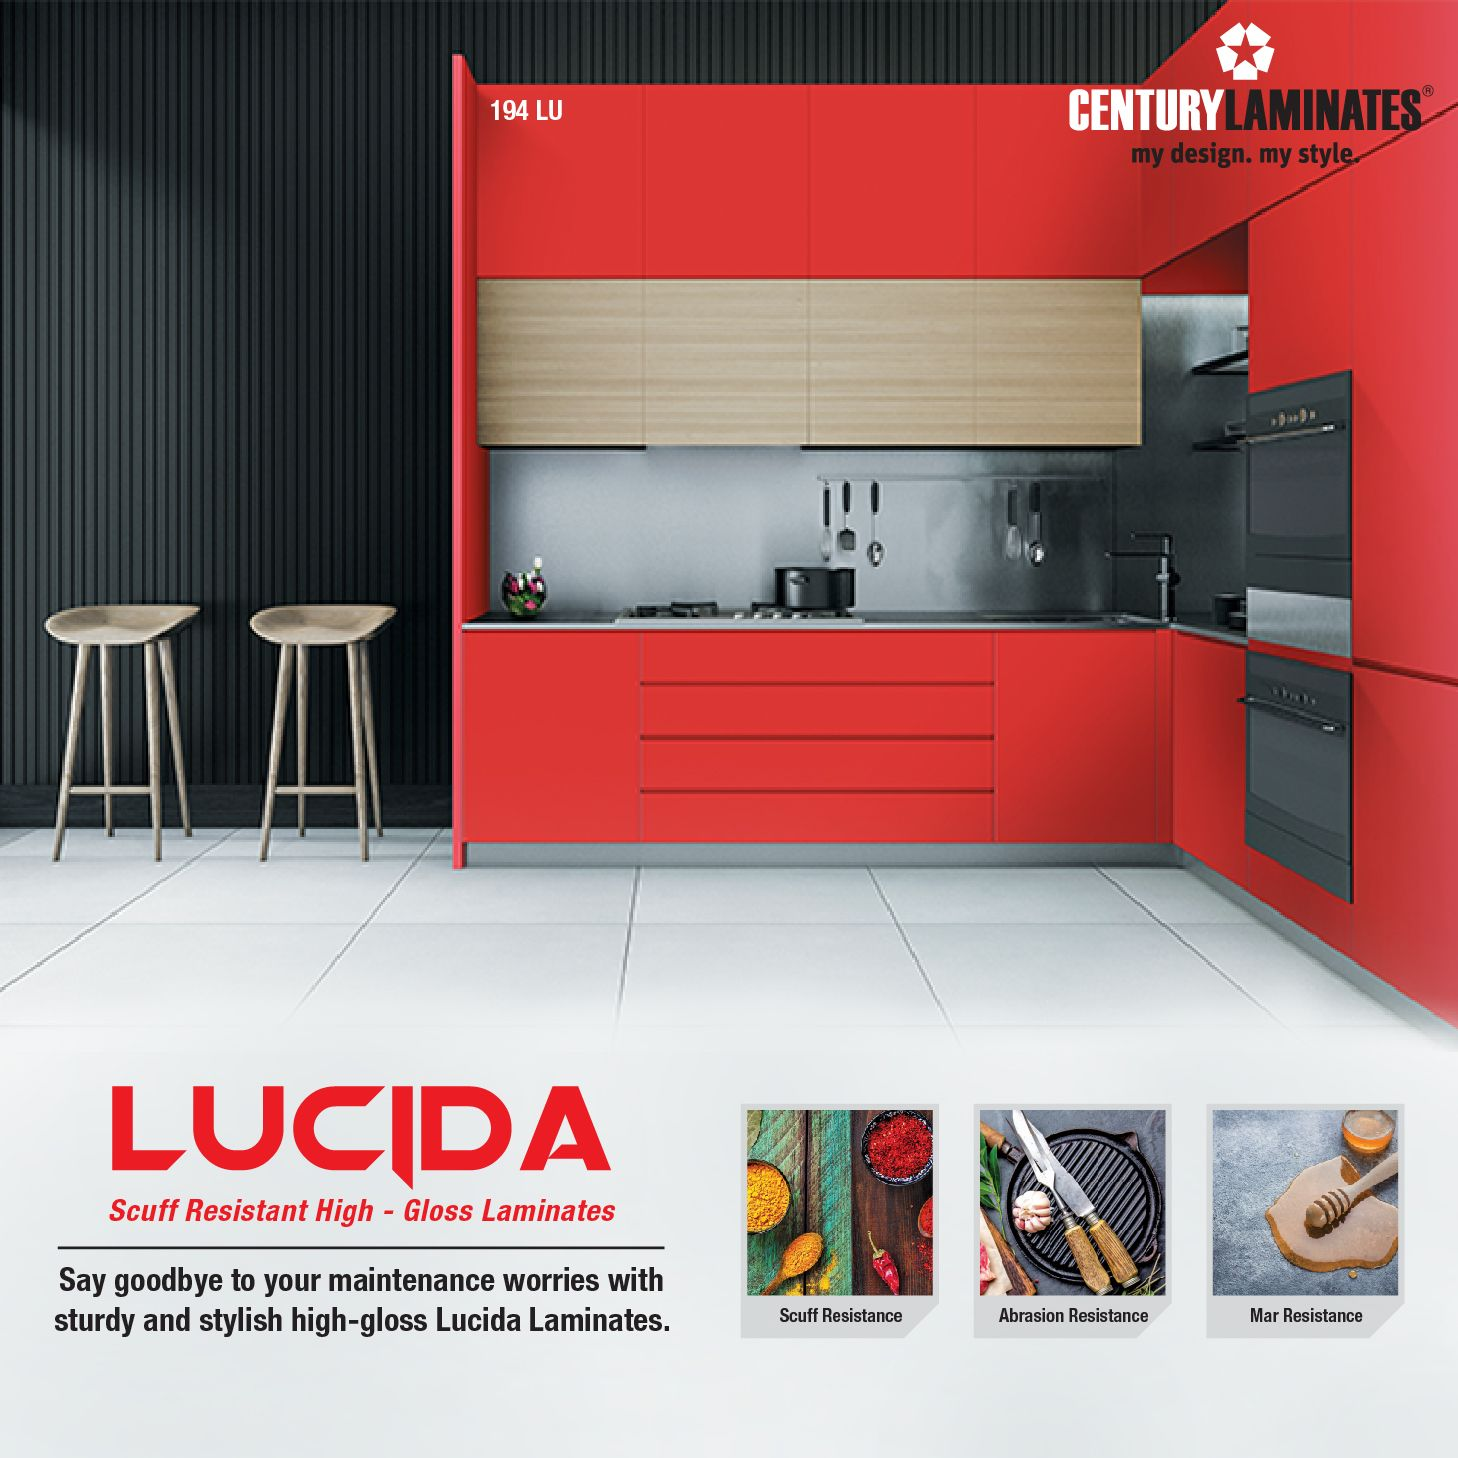 Scuff Resistant Hi Gloss Laminates To Add That Oomph And Glamour To Your Kitchen Lucida Laminates Are Hi Gloss Laminates Avai Laminates Laminate Sheets Decor